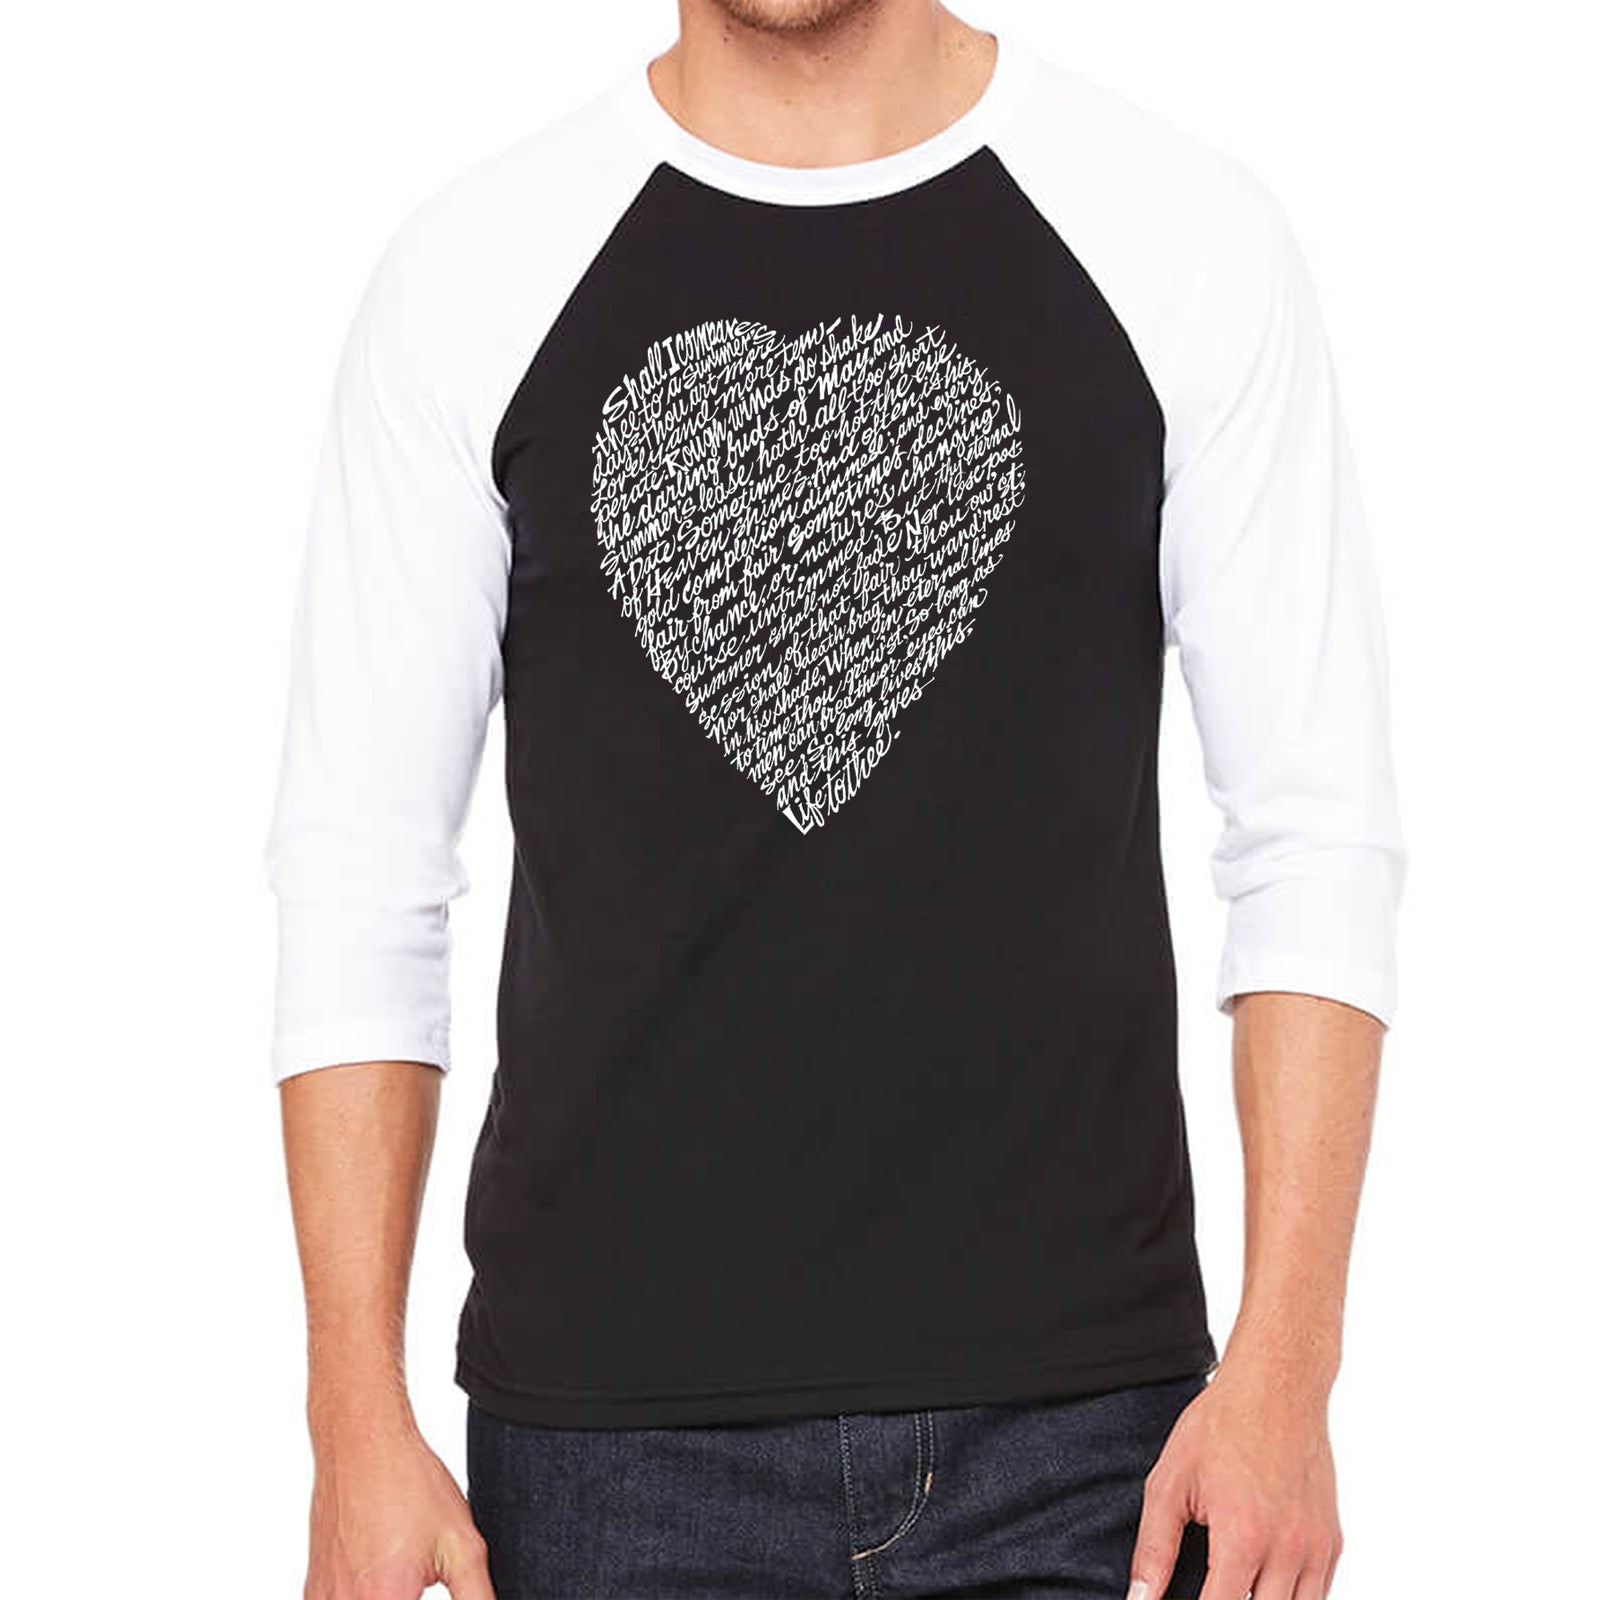 Men's Raglan Baseball Word Art T-shirt - WILLIAM SHAKESPEARE'S SONNET 18